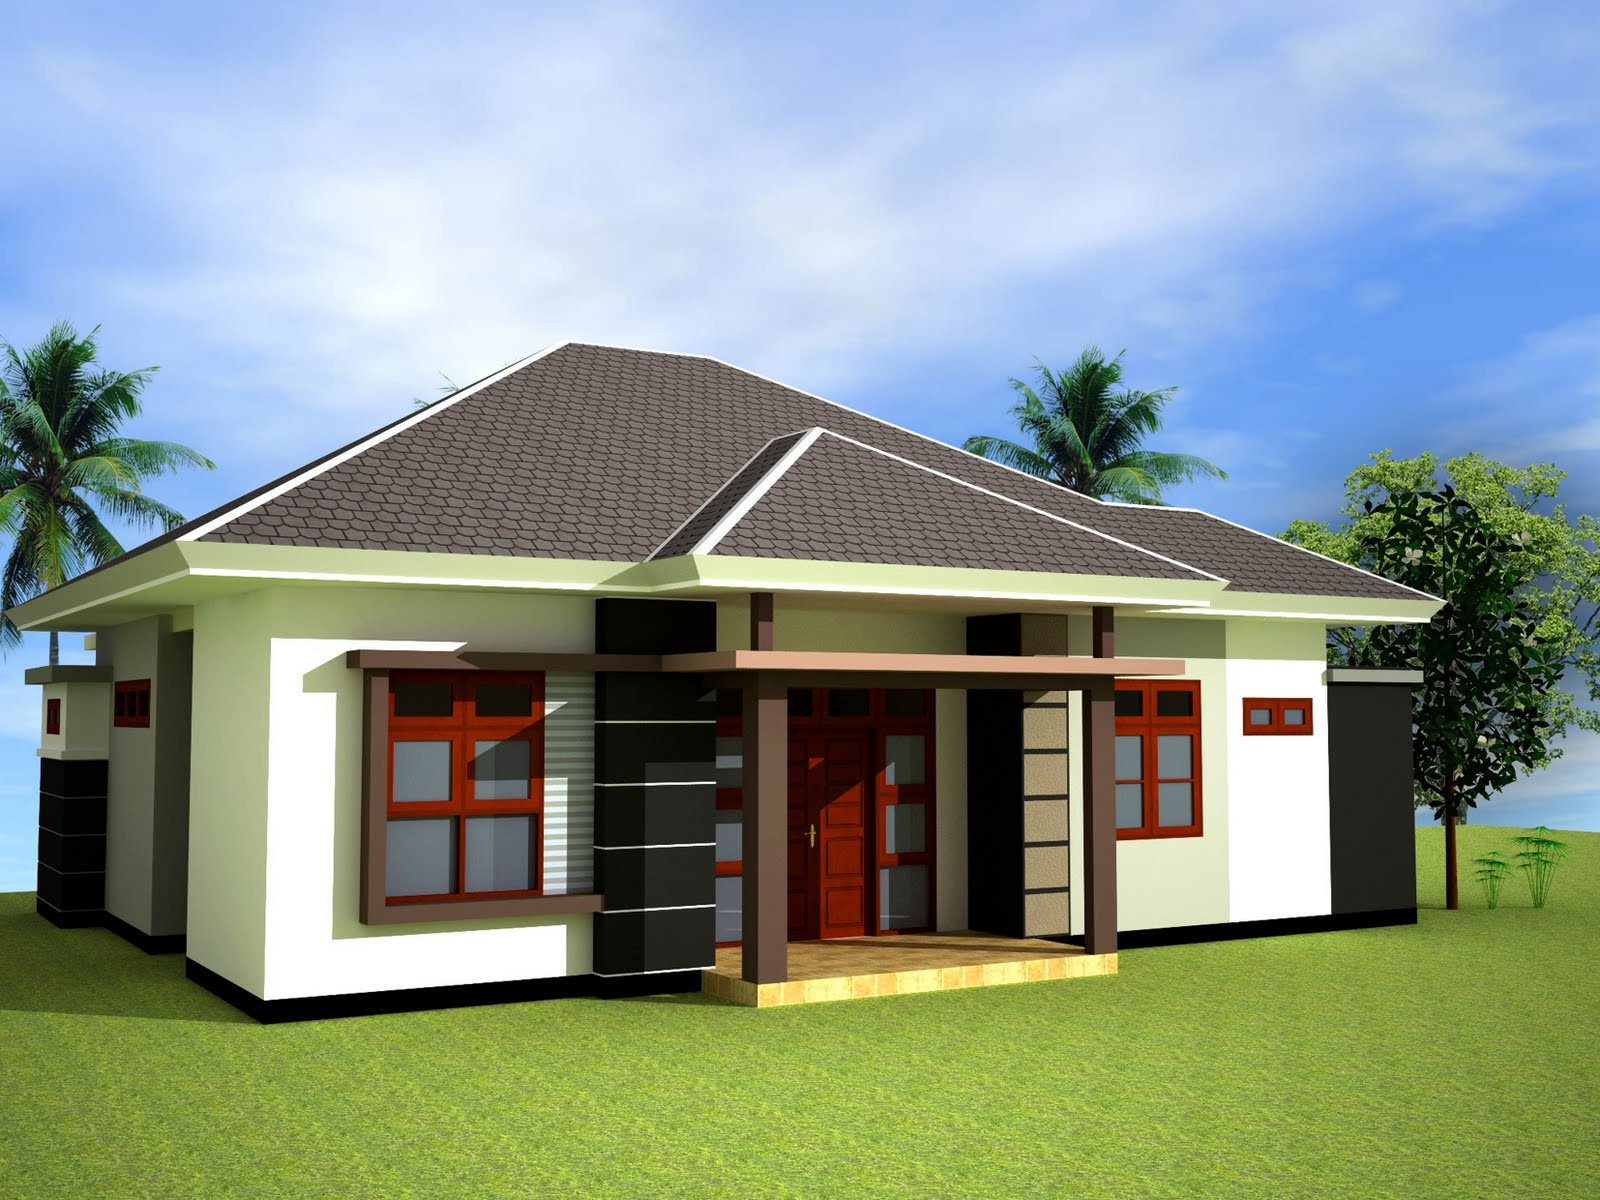 Gambar denah model rumah sederhana warna cat teras taman dll for Home designs 2015